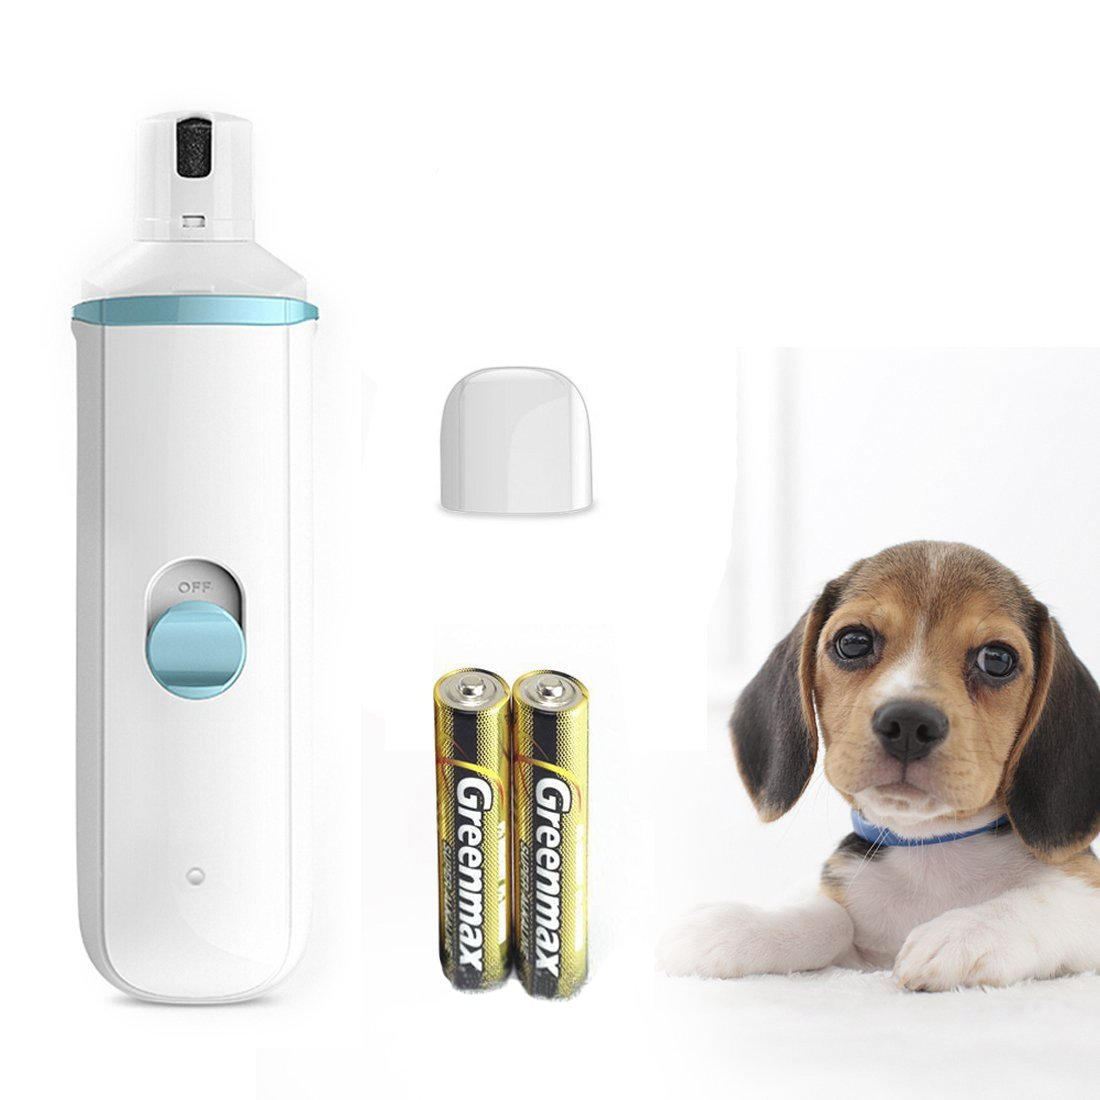 DIGDAN Dog Nail Grinder, Electric Pet Nail Grinder for Dogs,Cats, Rabbits,Low Noise and Gentle Pet Grooming Kit ,Portable Paw Clippers Grooming Tools for Other Animals